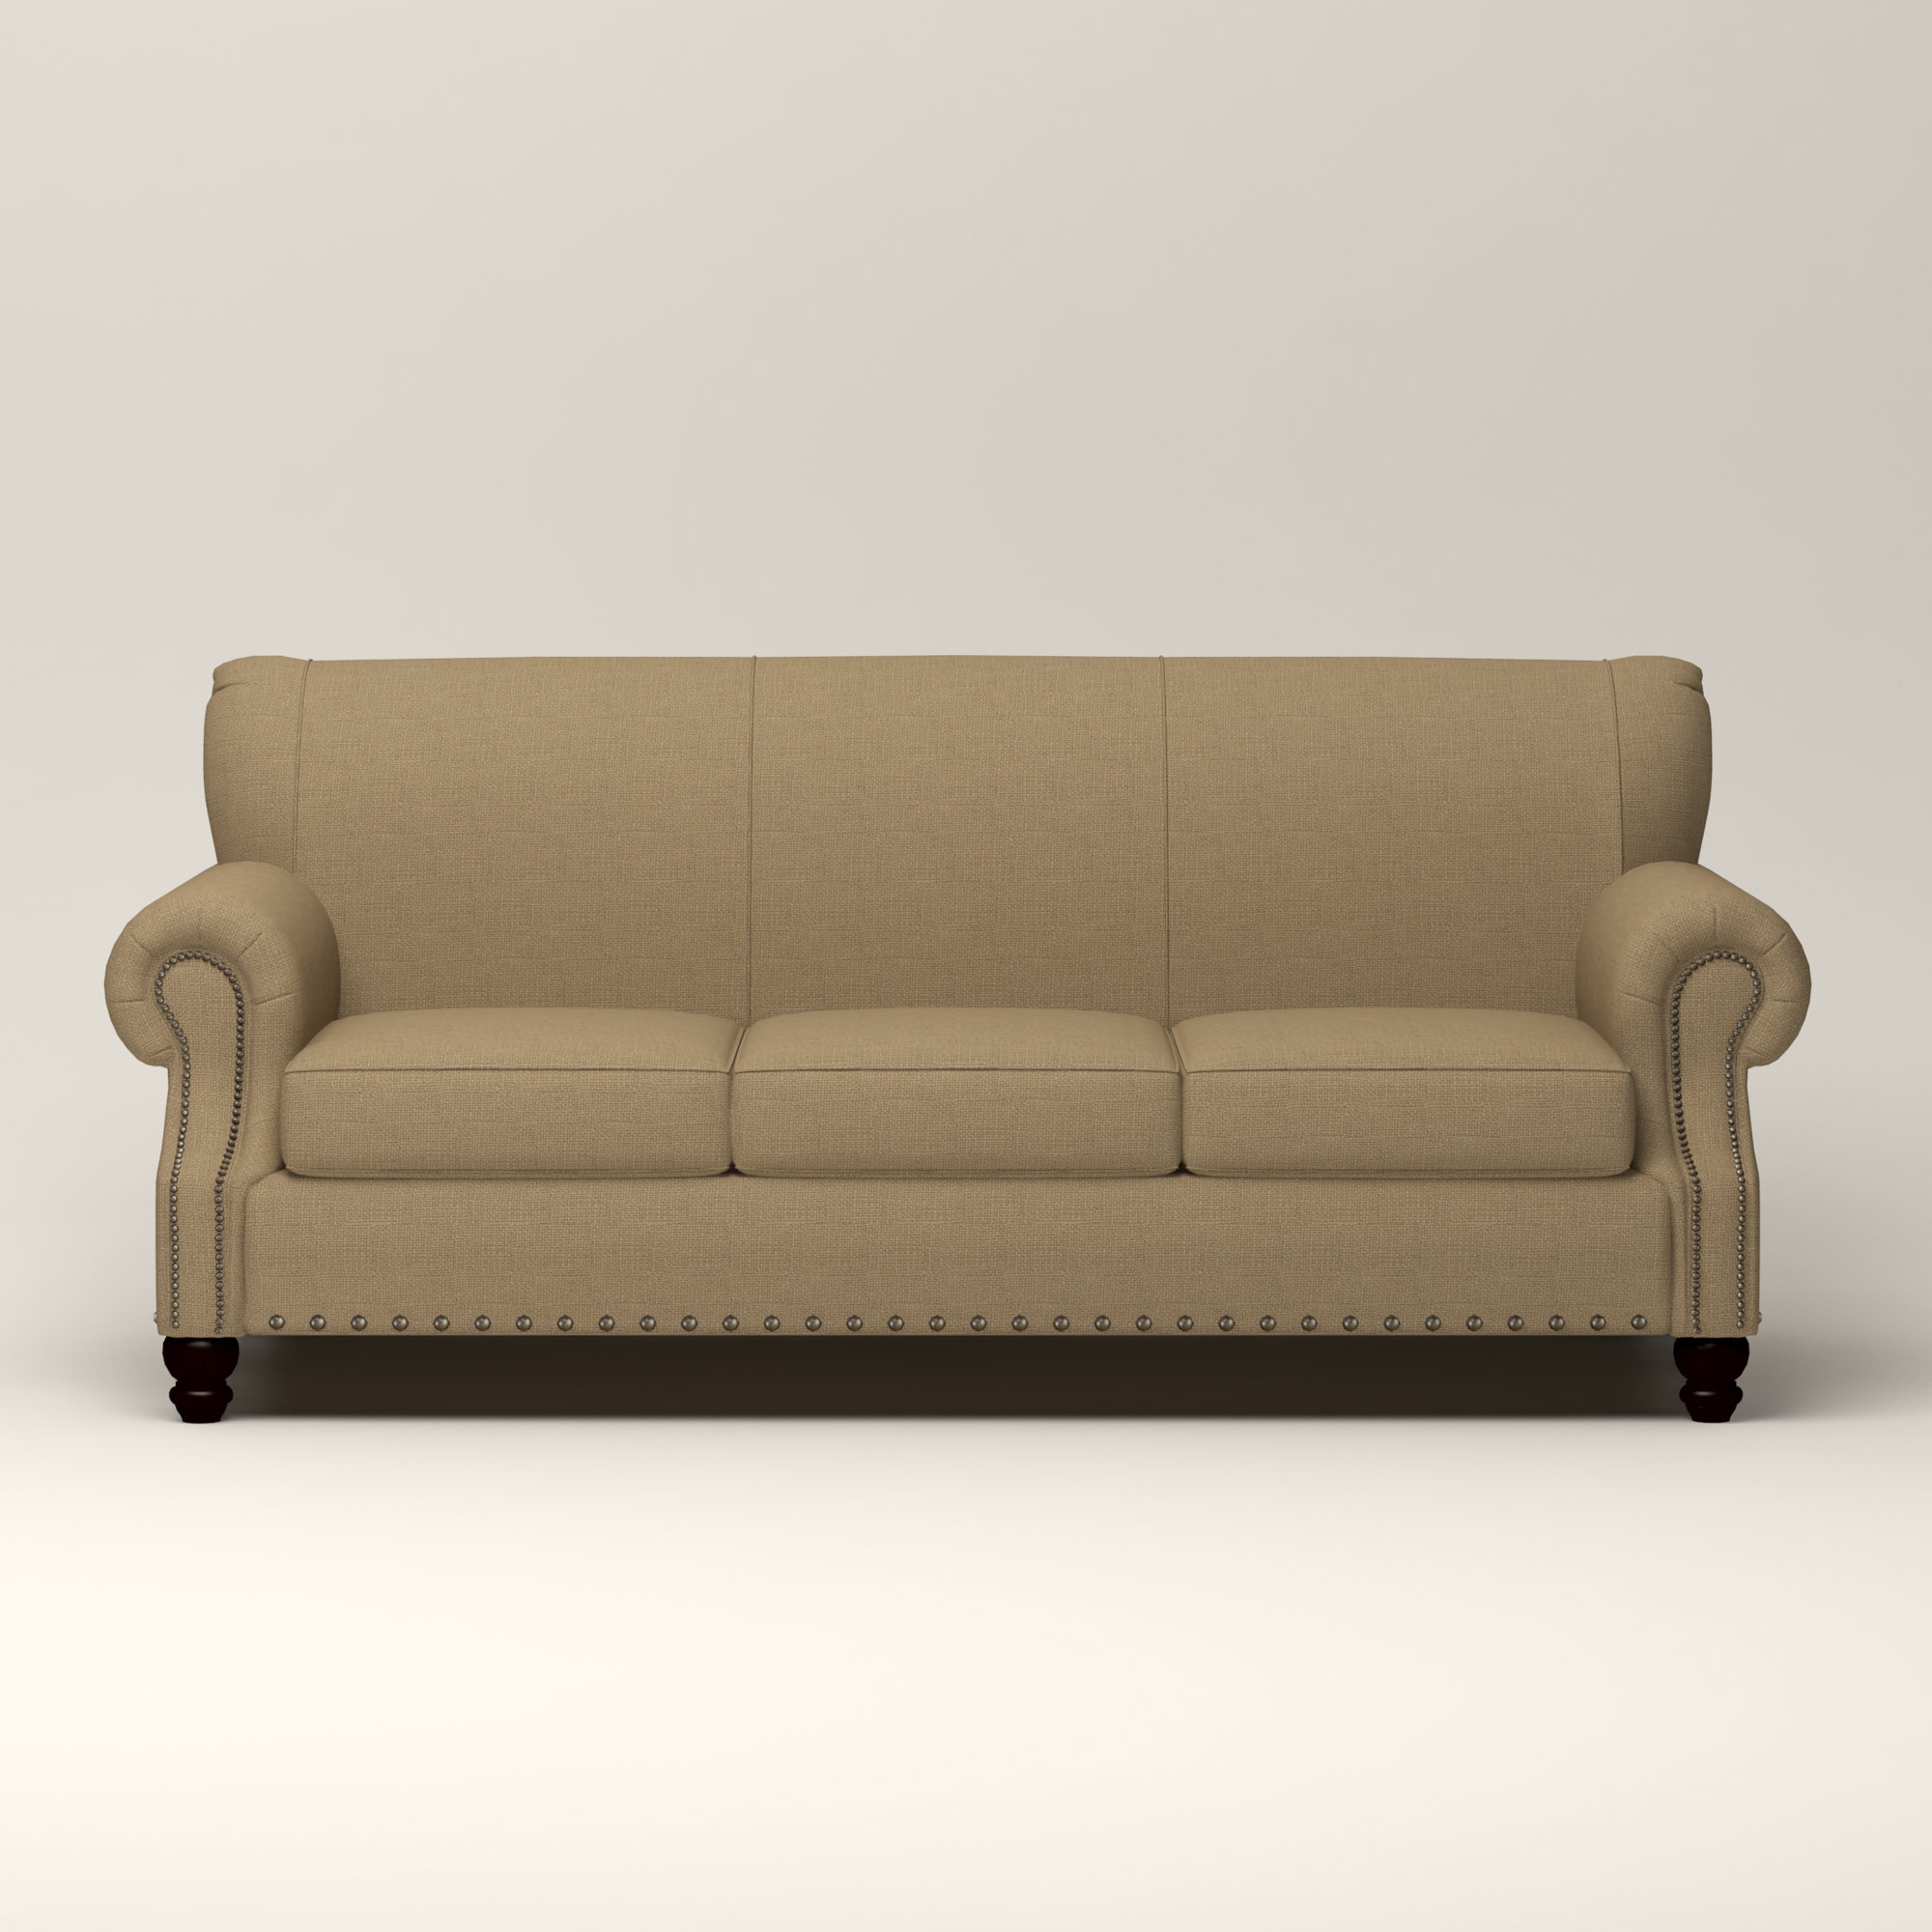 Wayfair With Widely Used Landry Sofa Chairs (View 13 of 20)